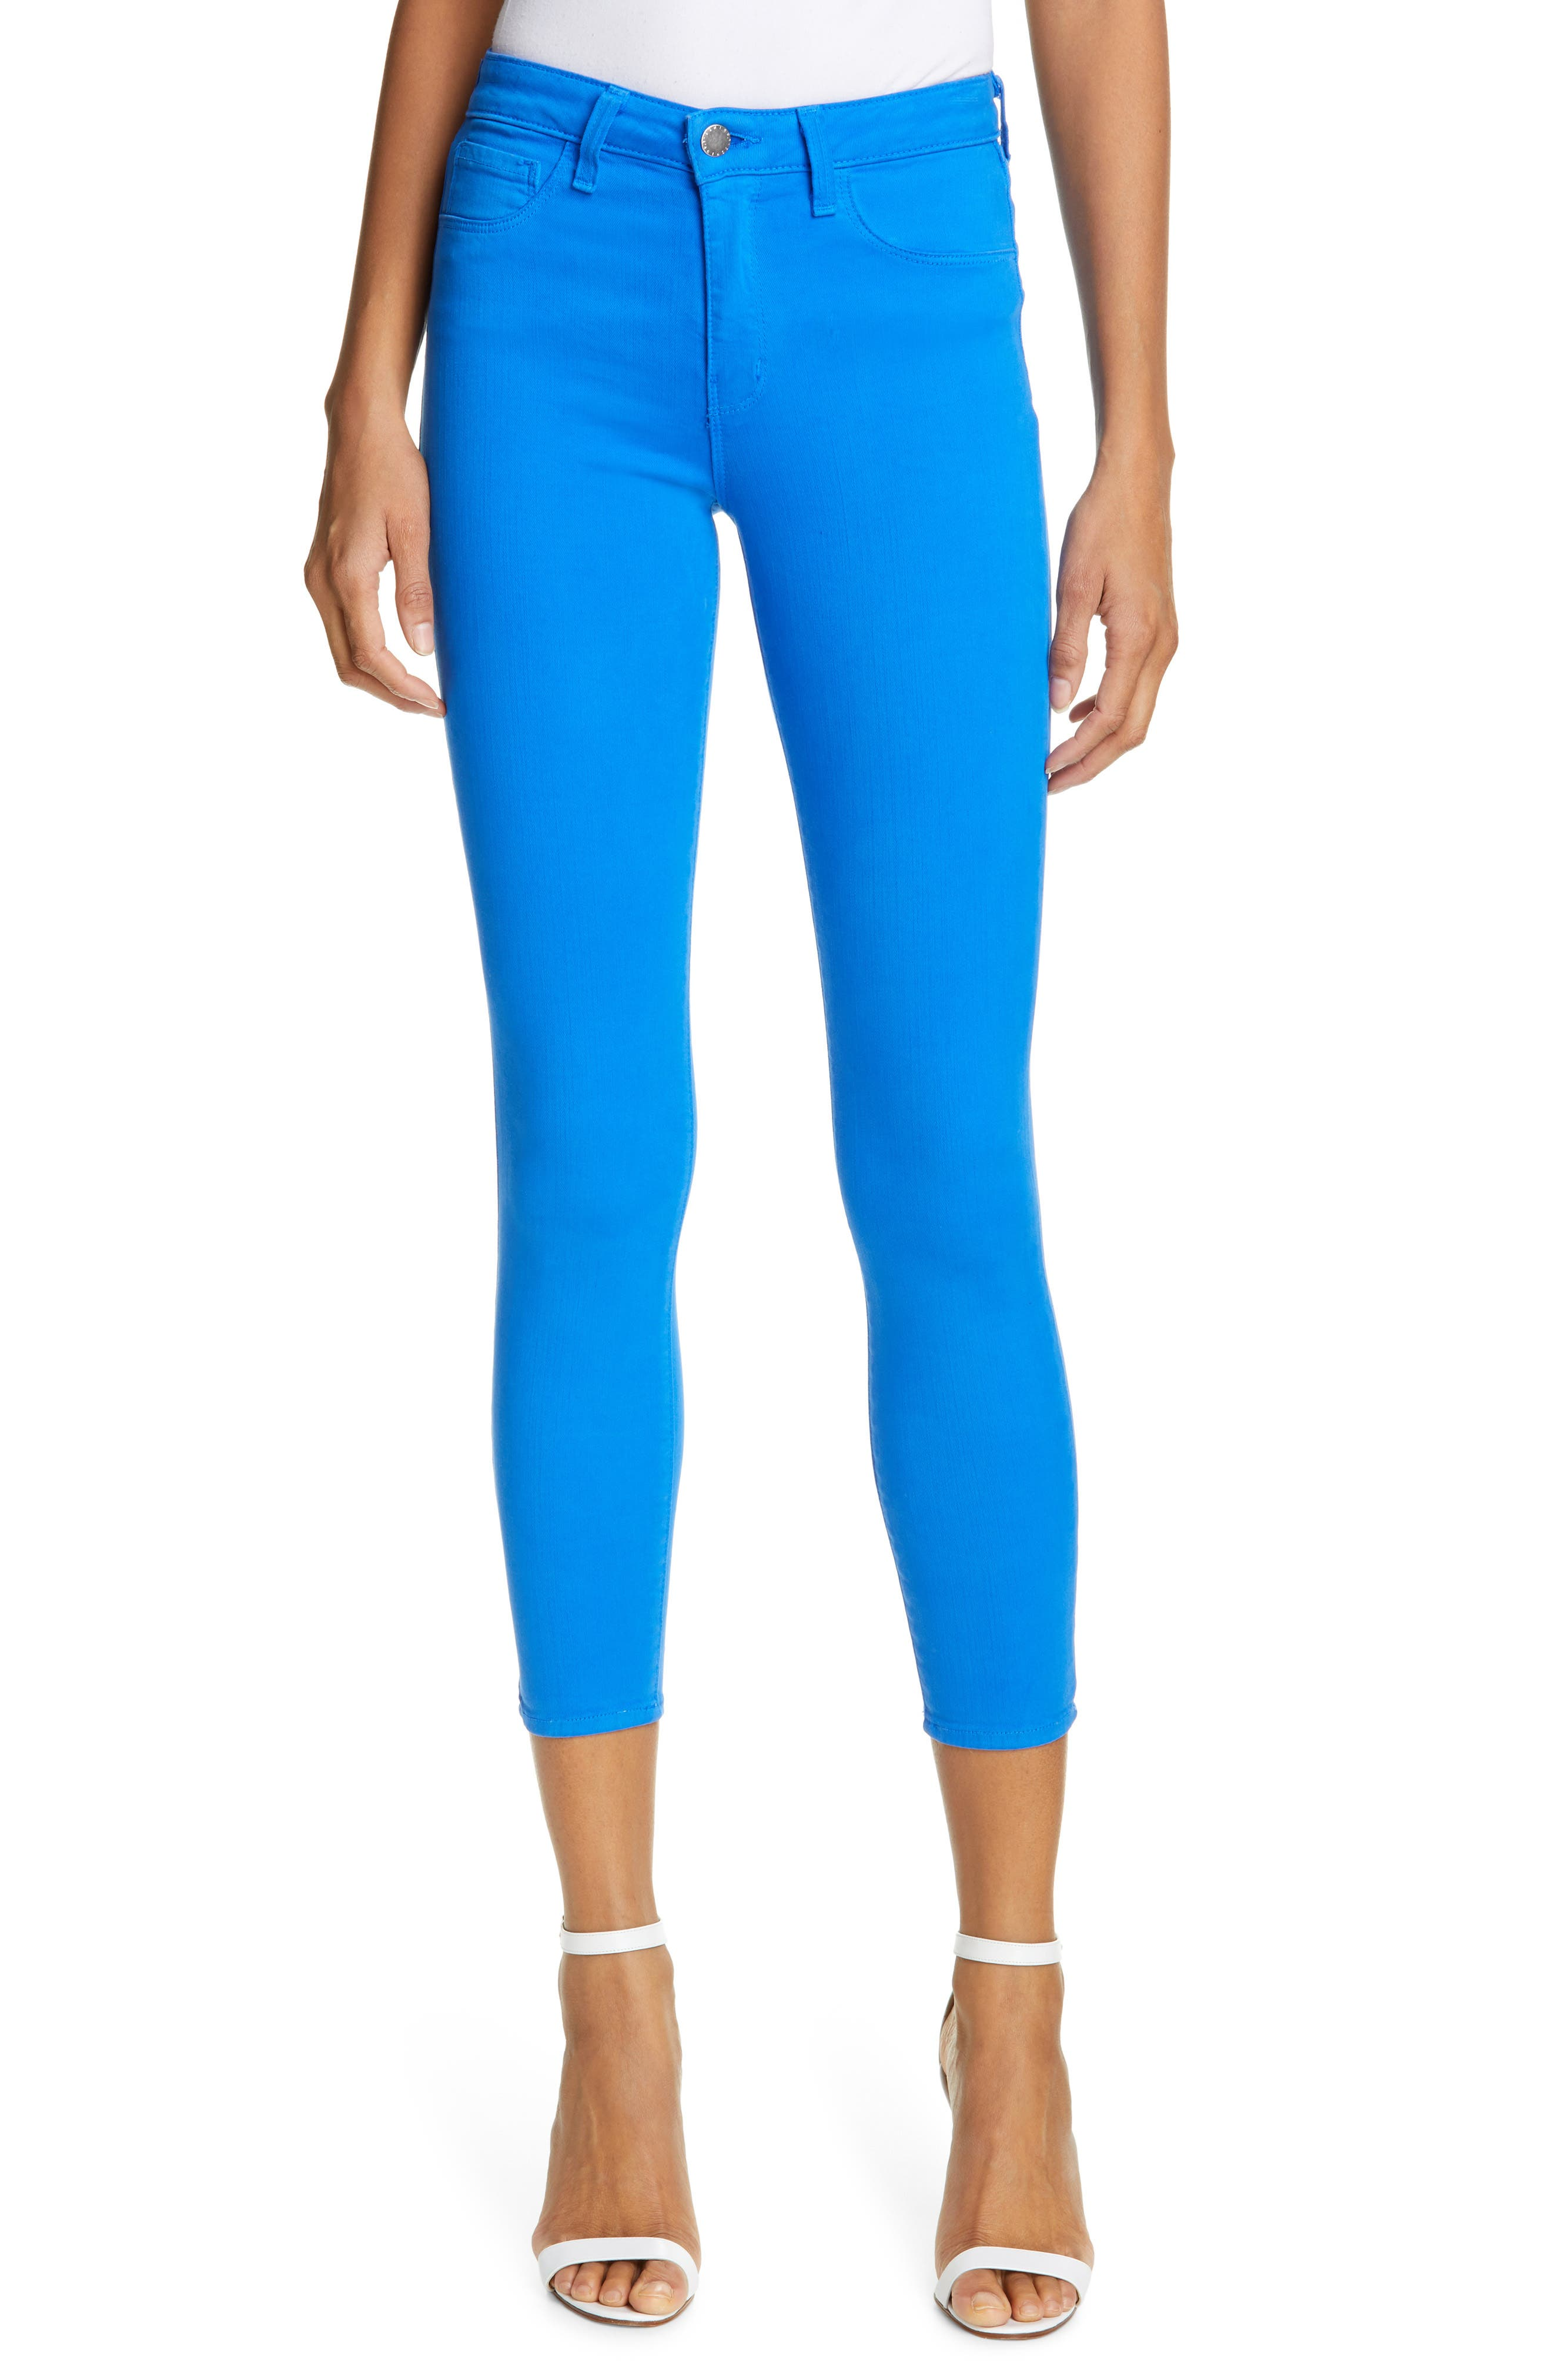 L'AGENCE, High Waist Skinny Ankle Jeans, Main thumbnail 1, color, RIVIERA BLUE